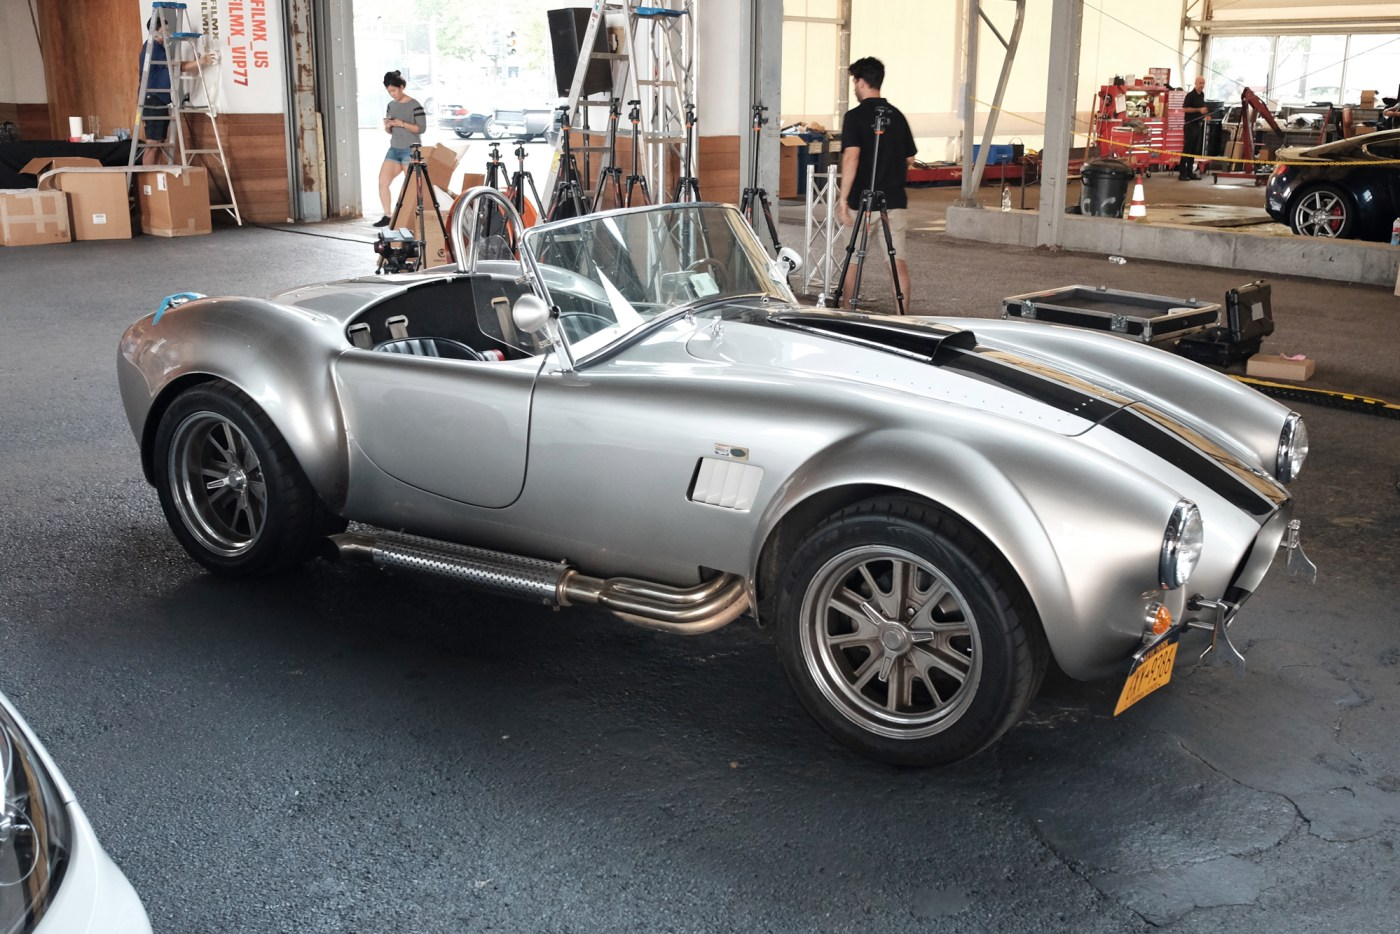 1965 Shelby A/C Cobra with Ford 302 V8 under the hood